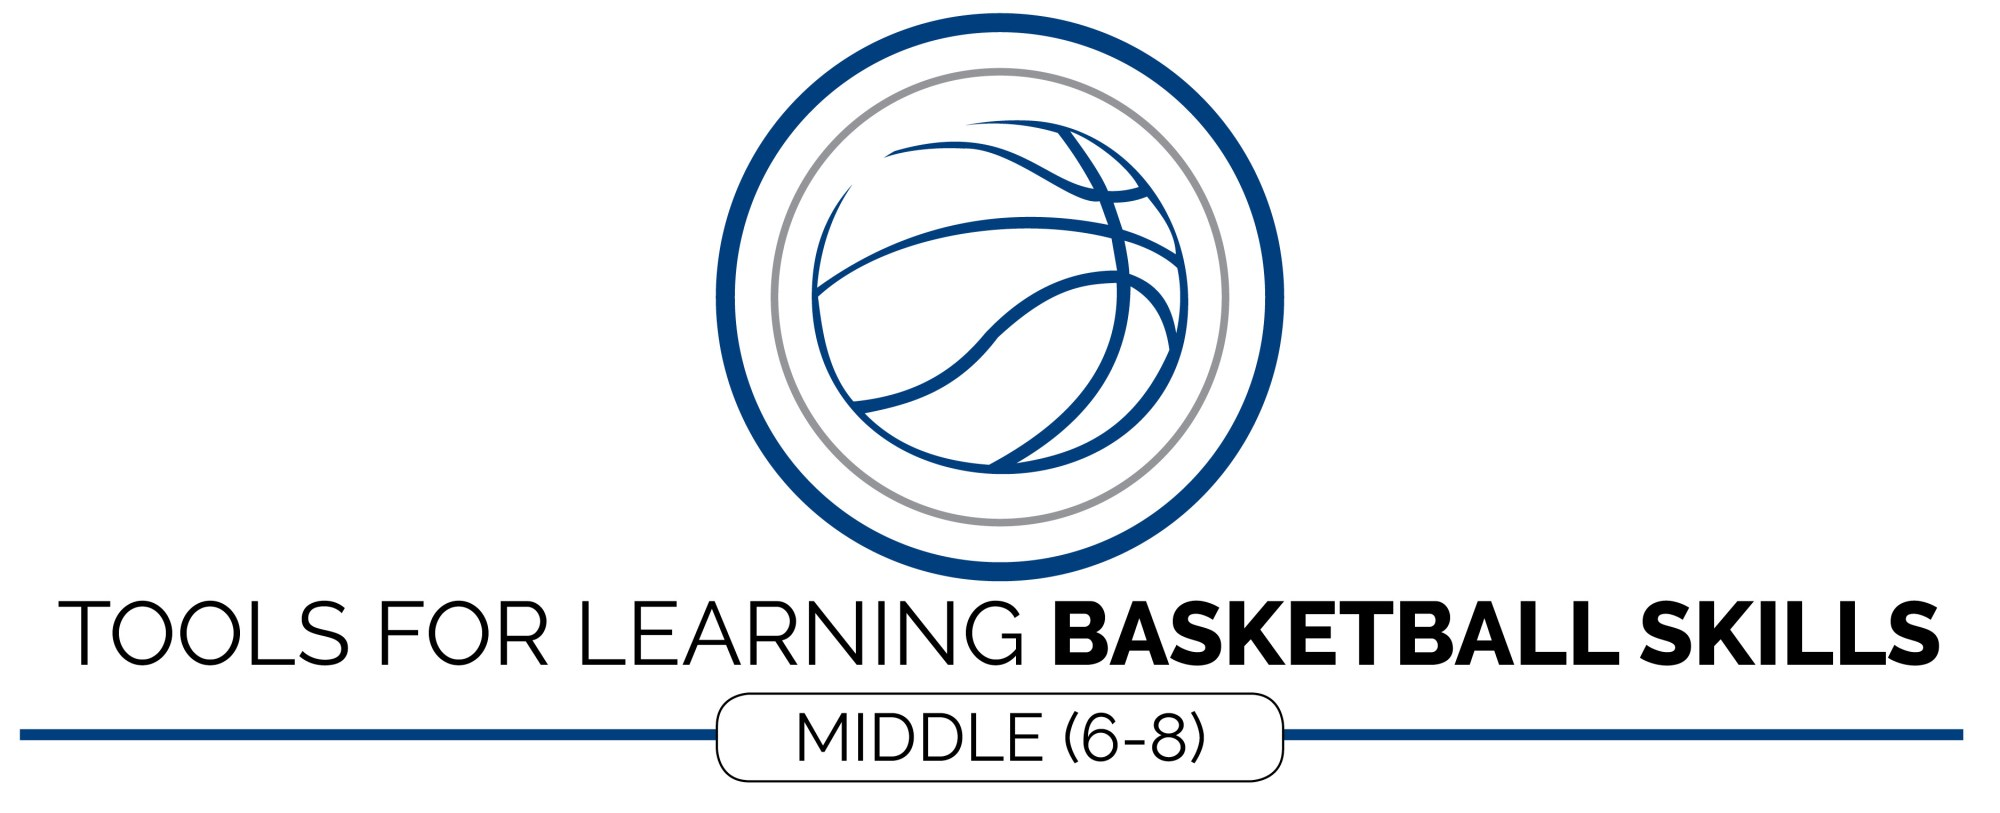 hight resolution of Basketball Skills(MS 6-8) - OPEN Physical Education Curriculum